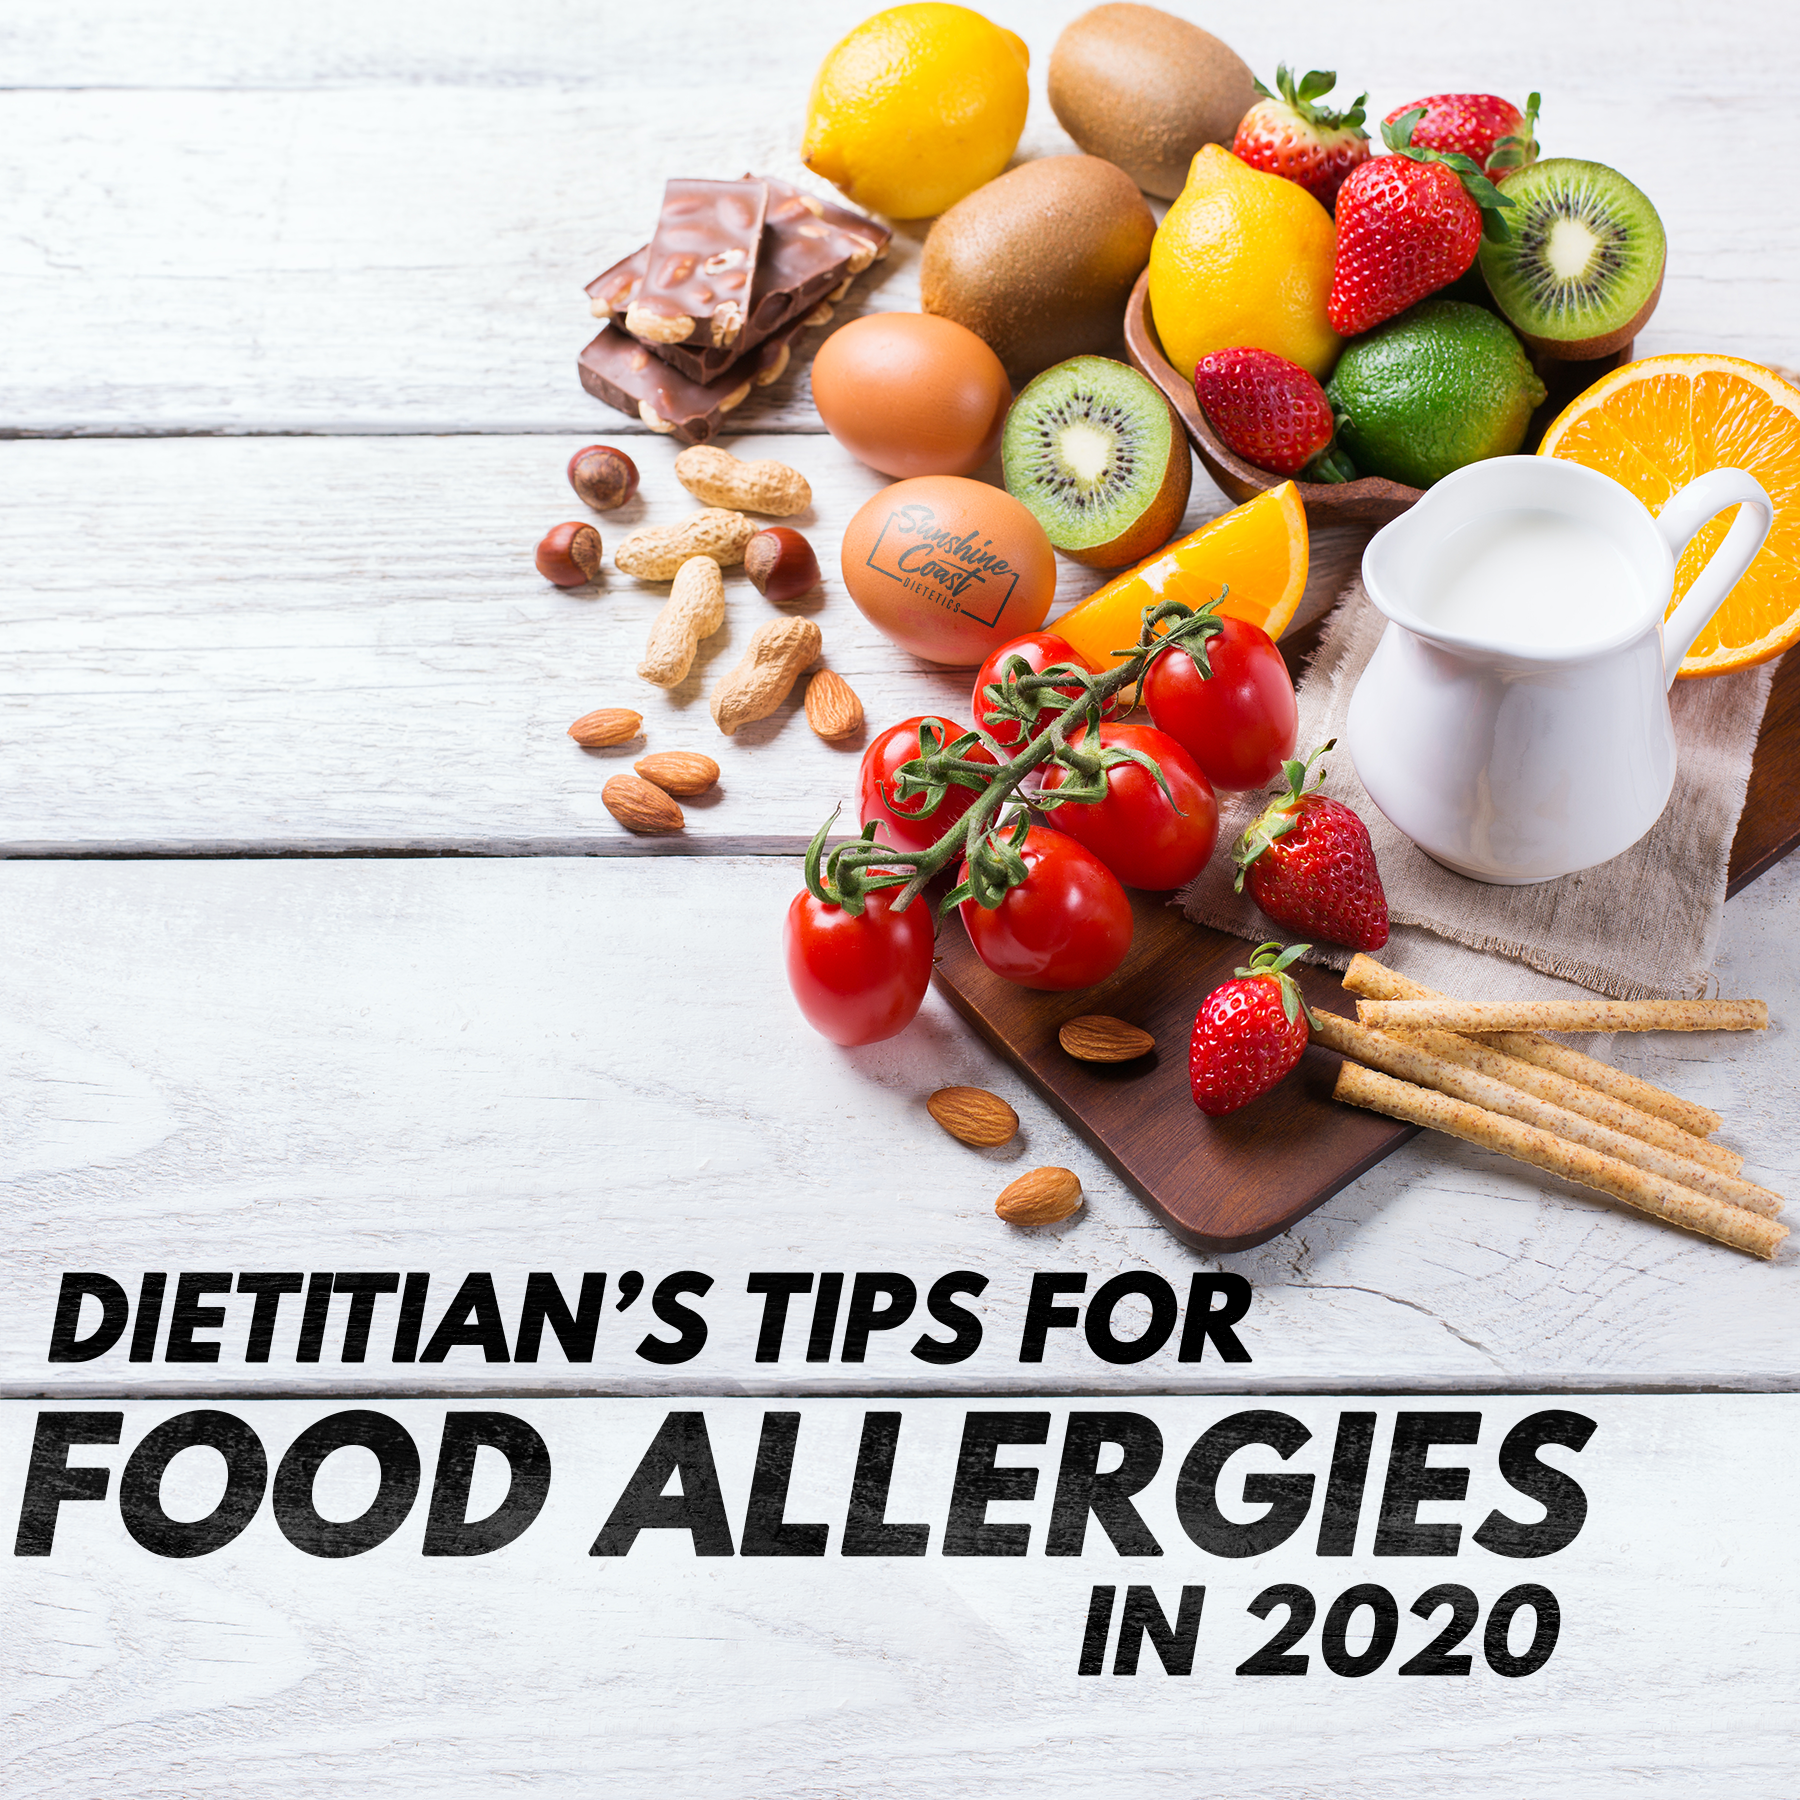 Dietitian's Tips for Food Allergies in 2020